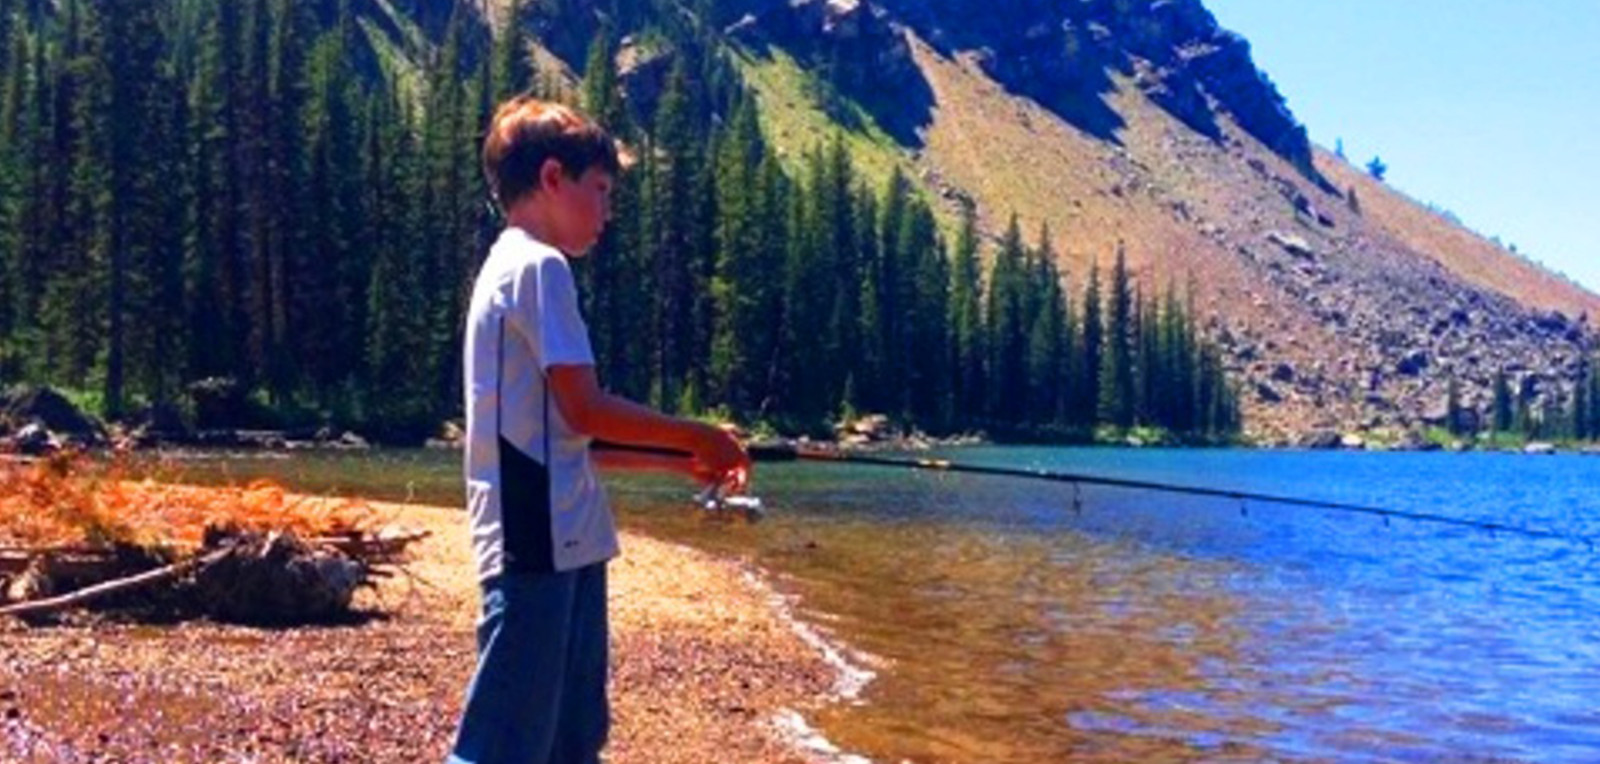 Montana fly fishing horseback pack trips for Best fly fishing in us